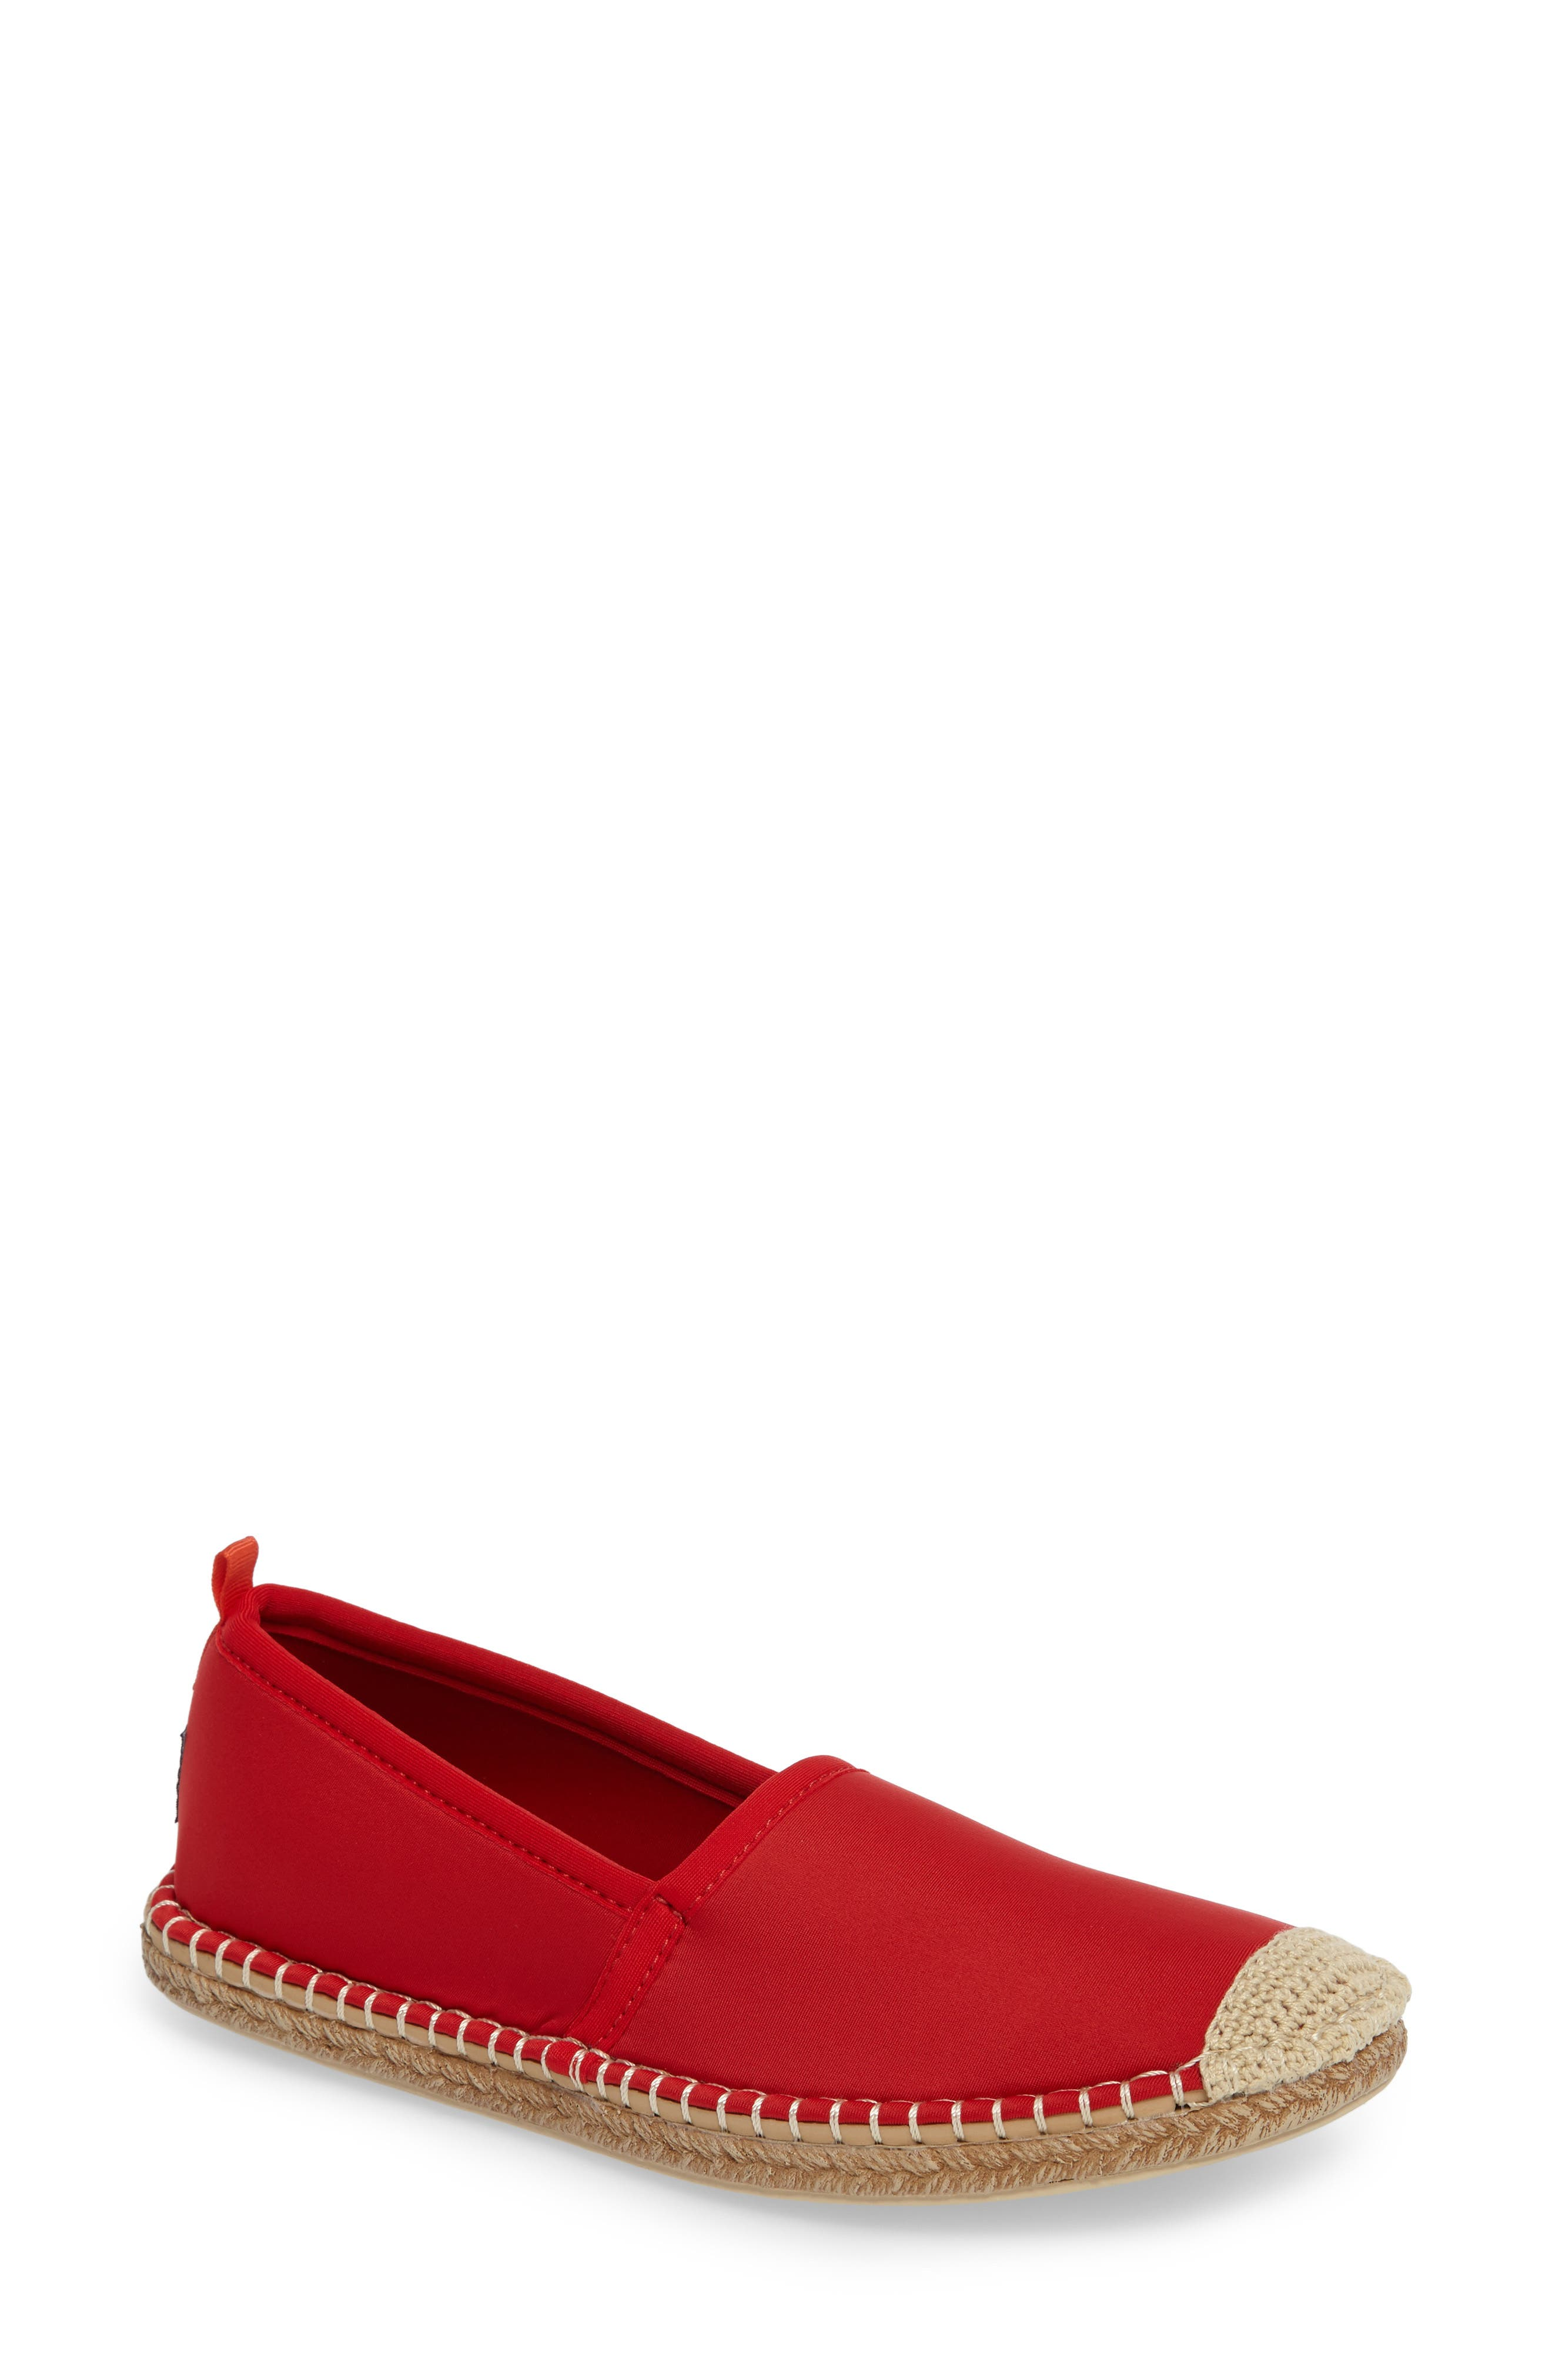 SEA STAR BEACHWEAR Sea Star Beachcomber Espadrille Water Shoe in Lighthouse Red